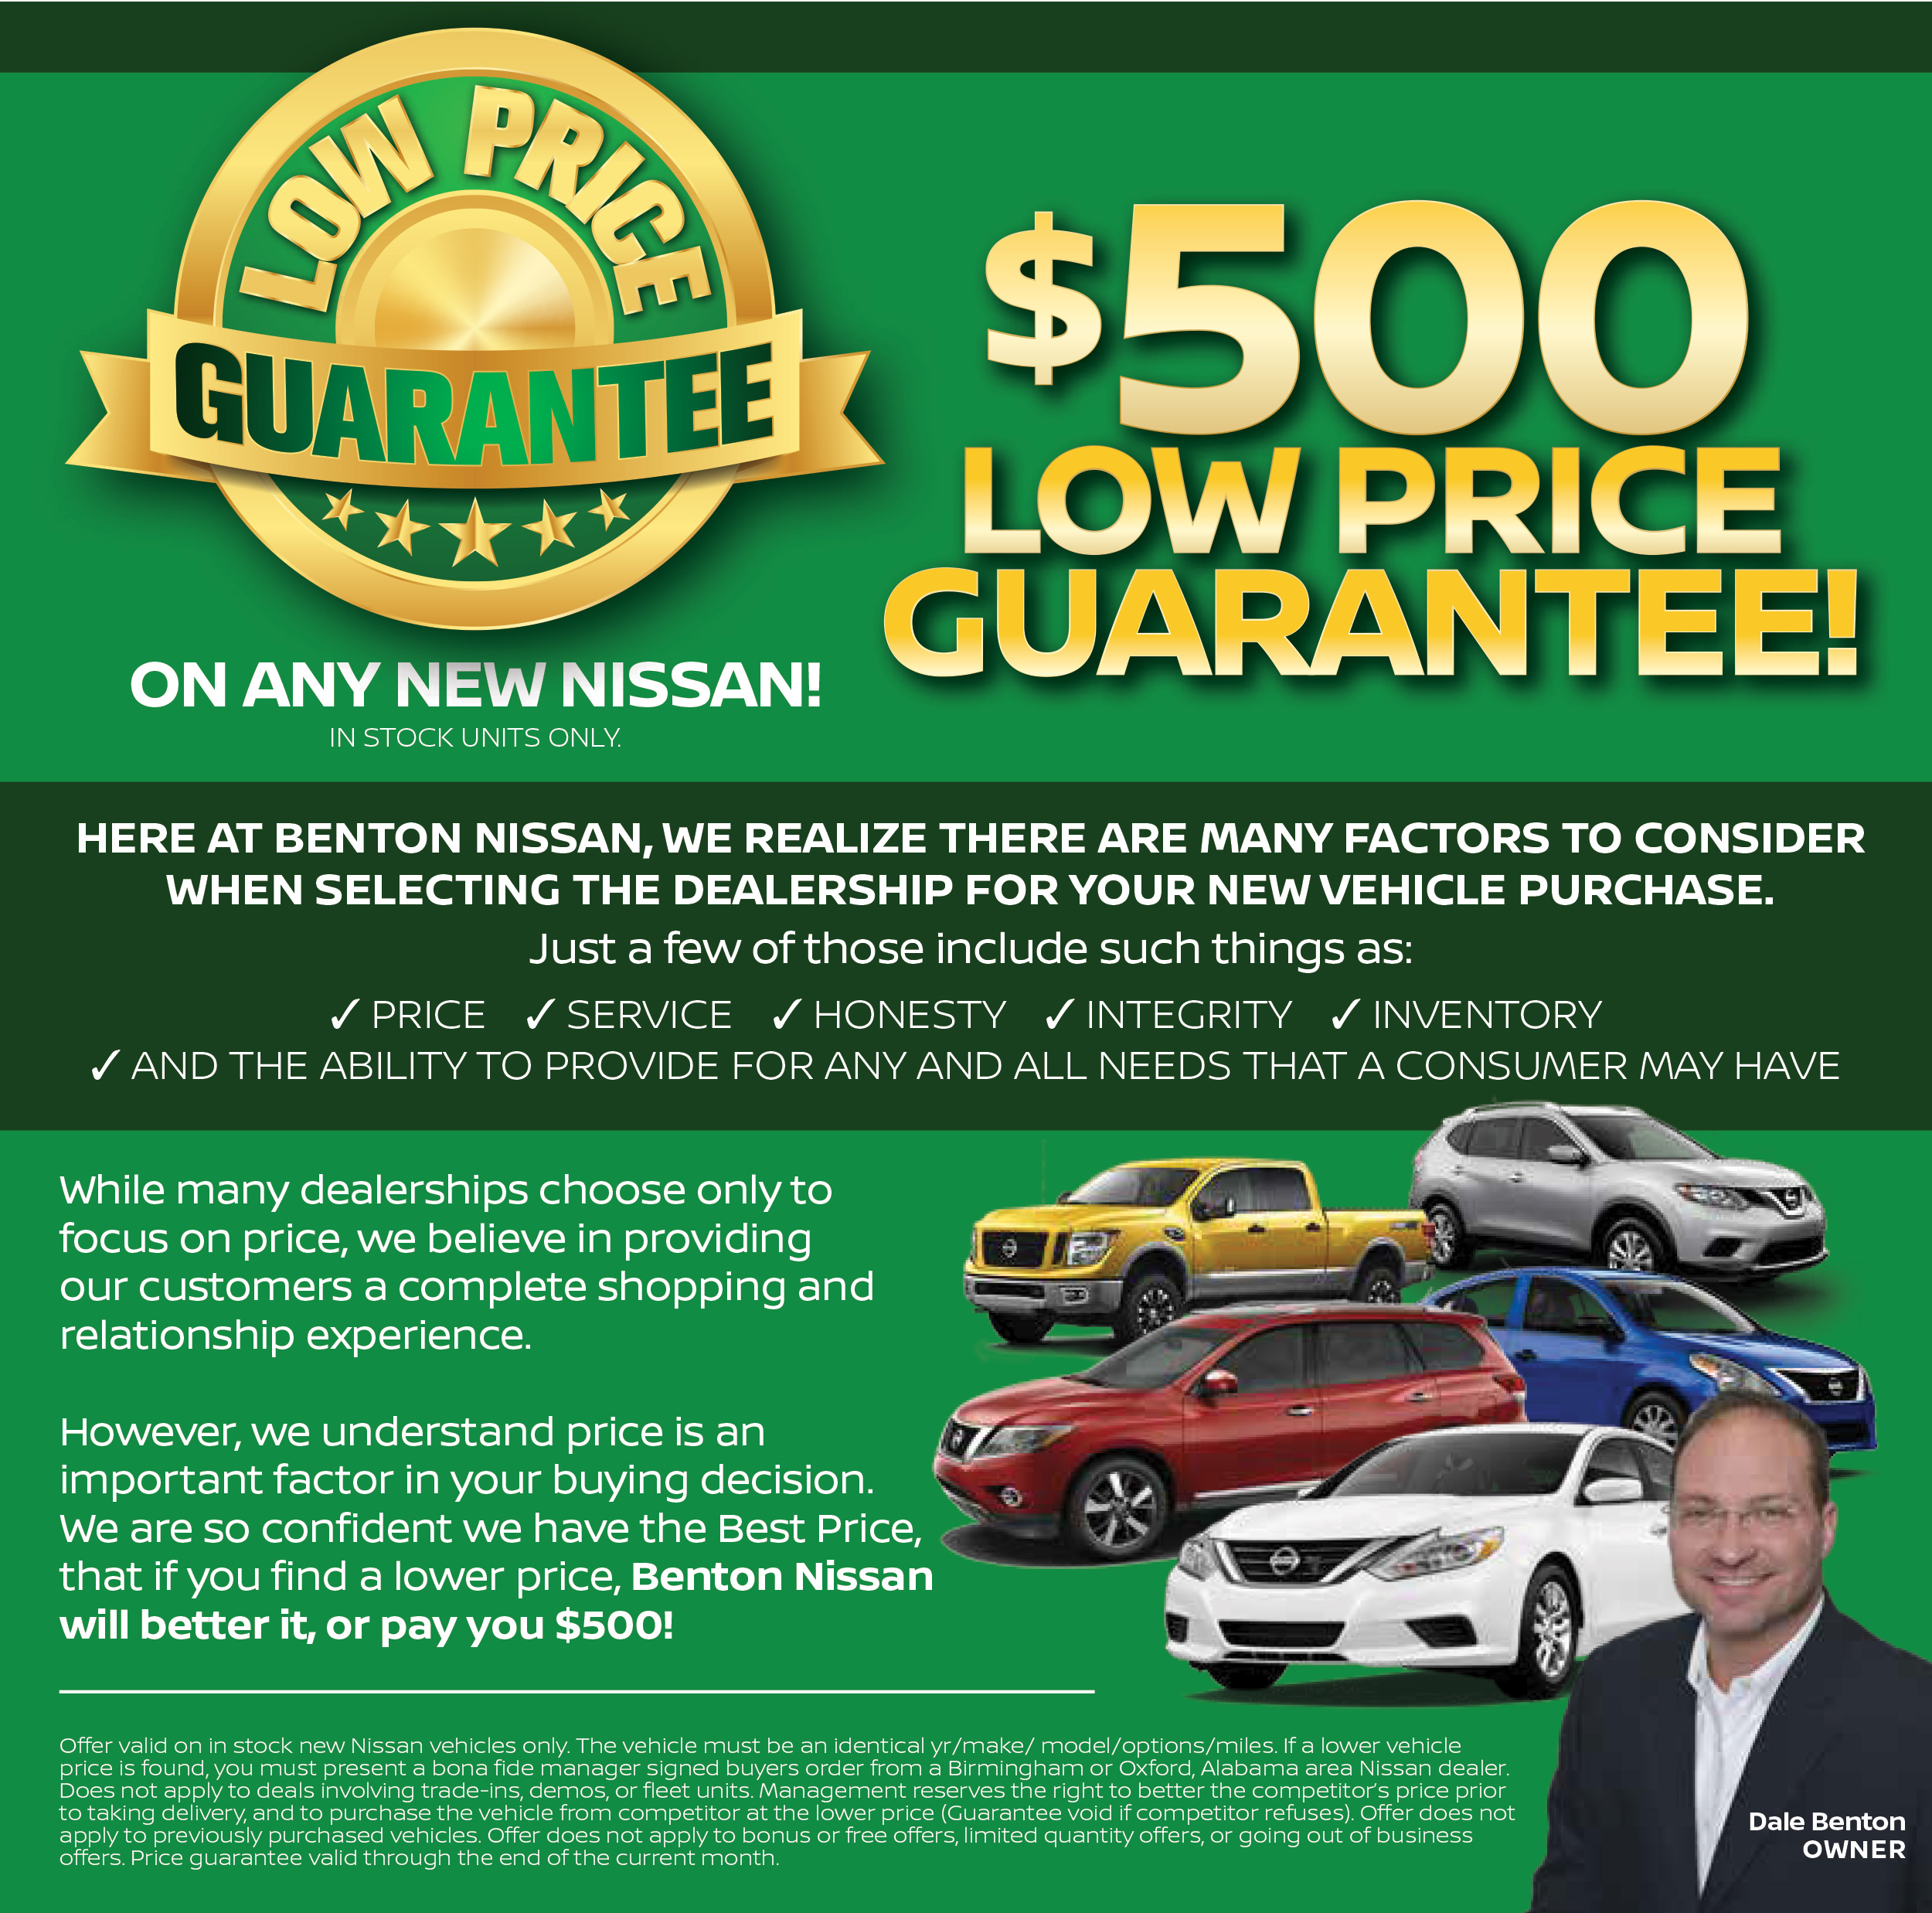 Guaranteed the best price and if you find a lower price, Benton Nissan will better it, or pay you 500 dollars.